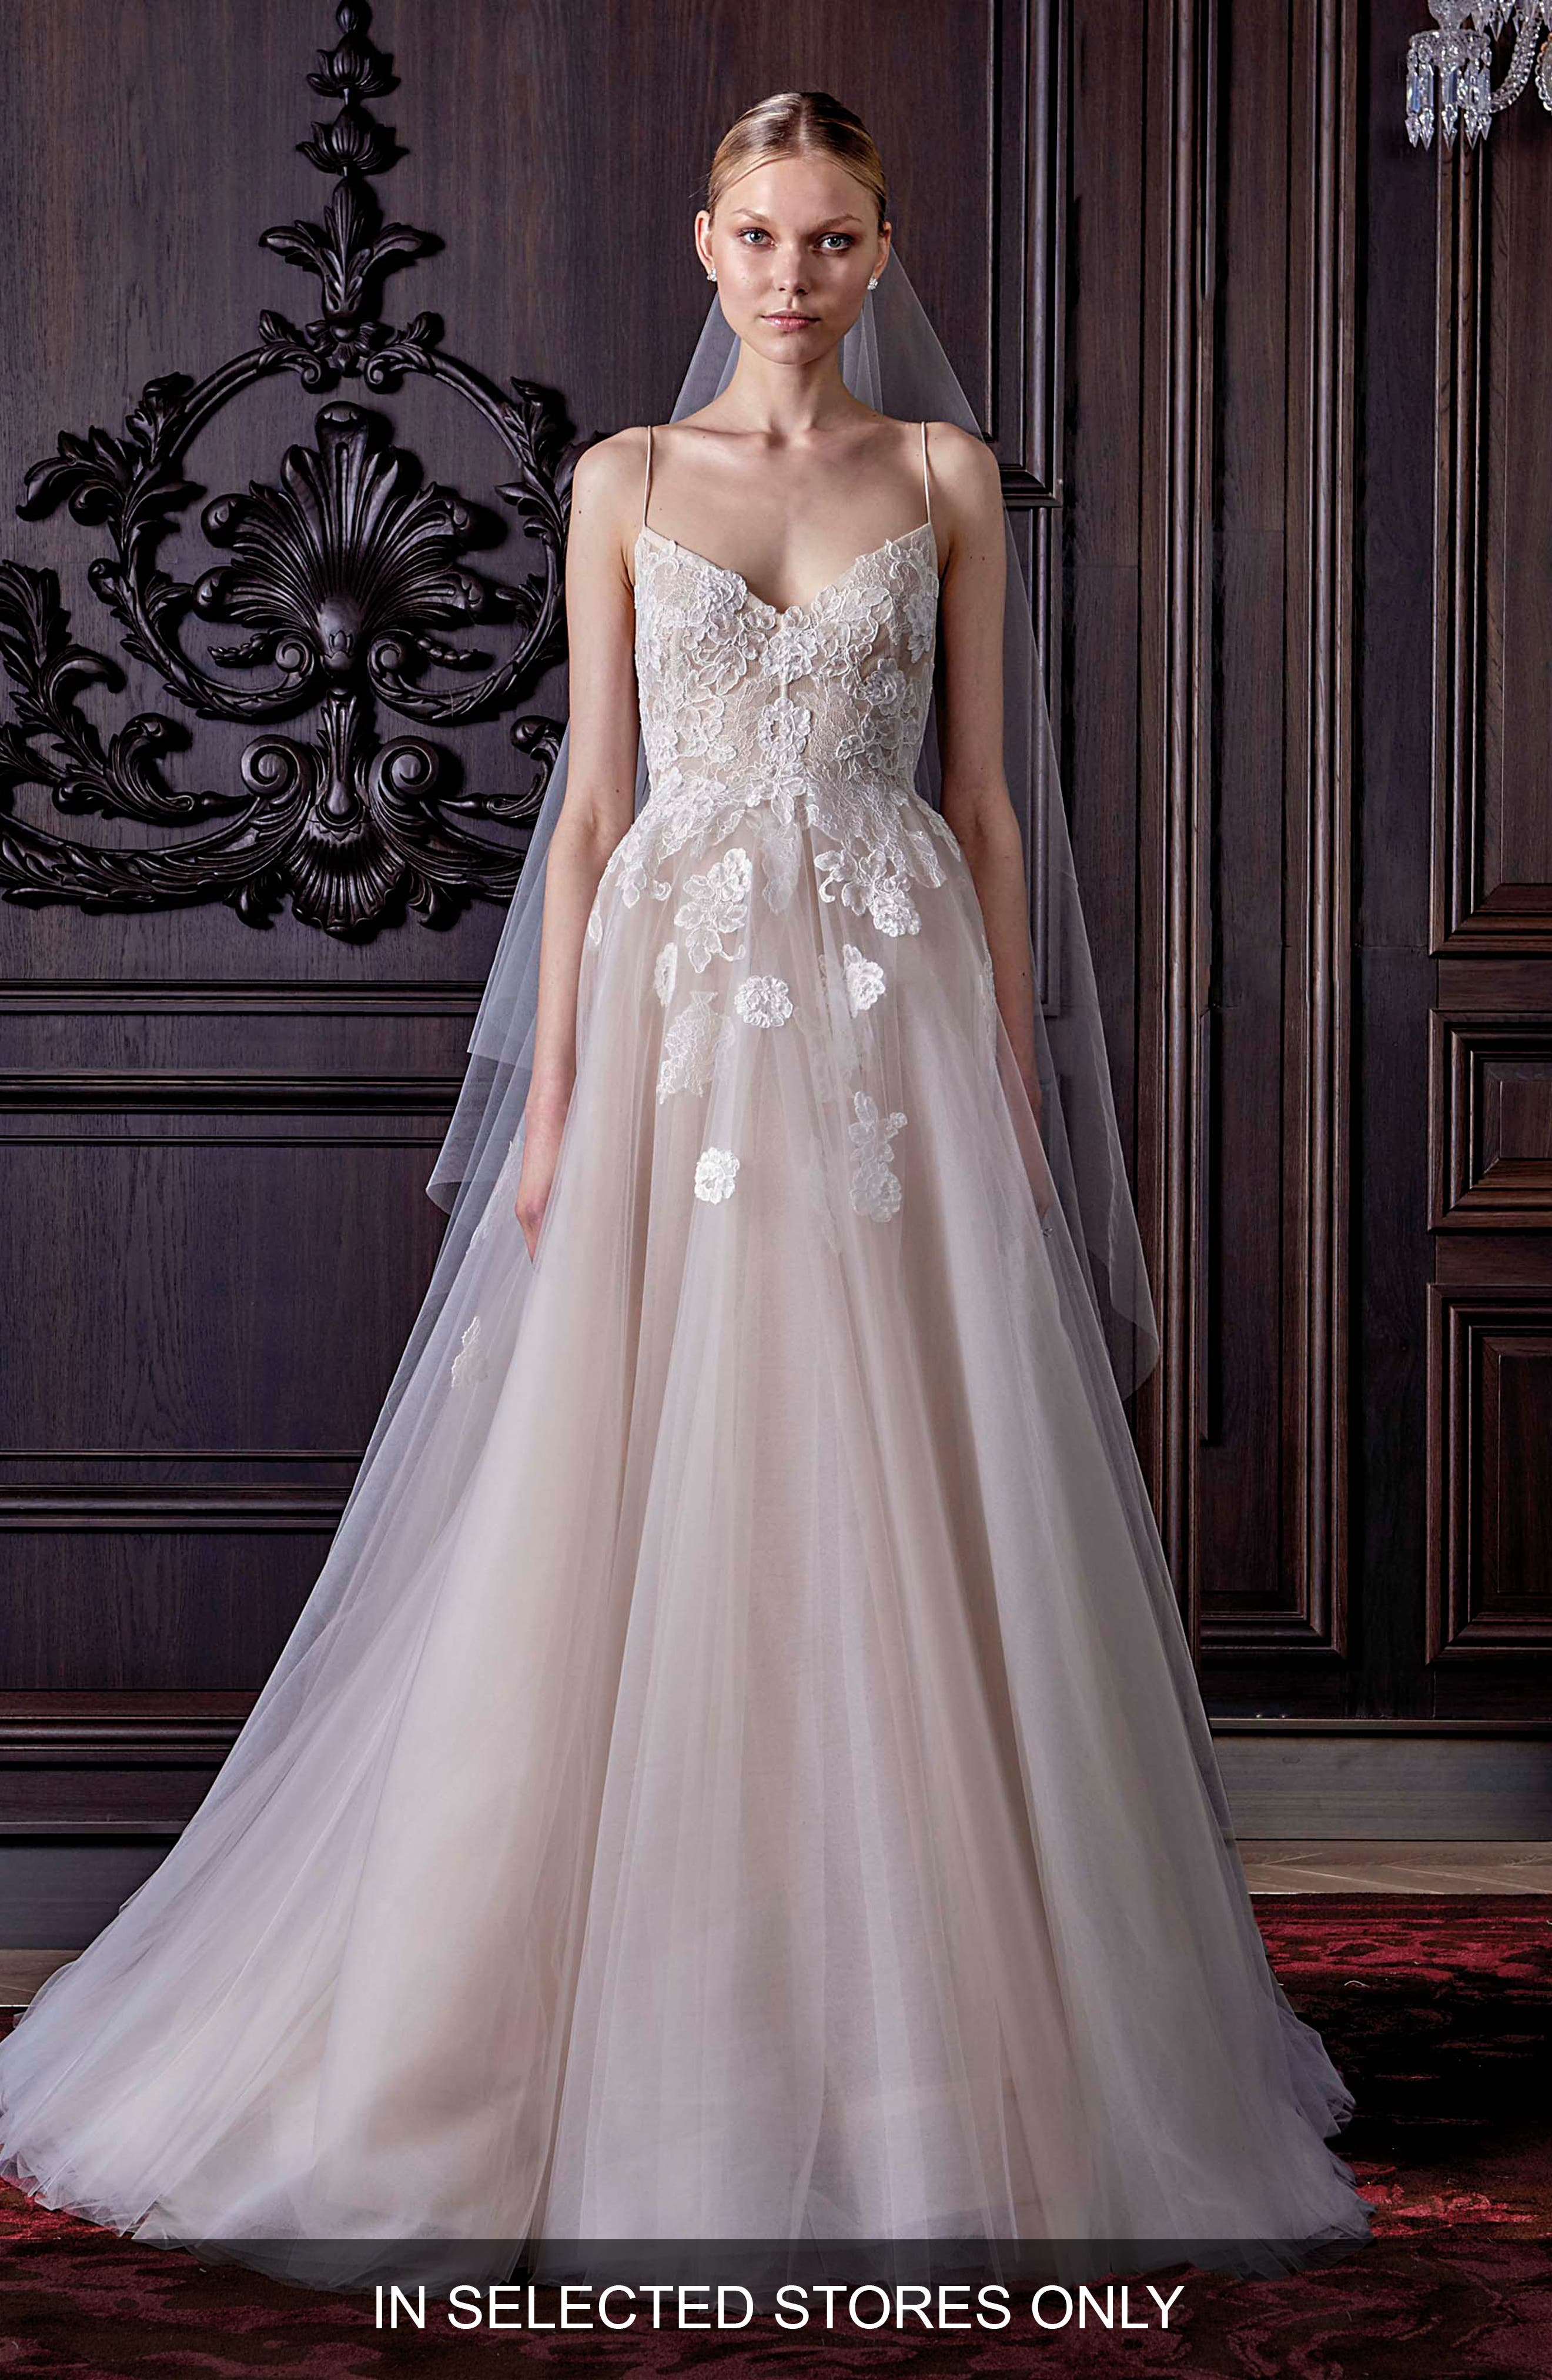 Severine Chantilly Lace & Tulle Gown,                             Alternate thumbnail 2, color,                             SILK WHITE/ NUDE